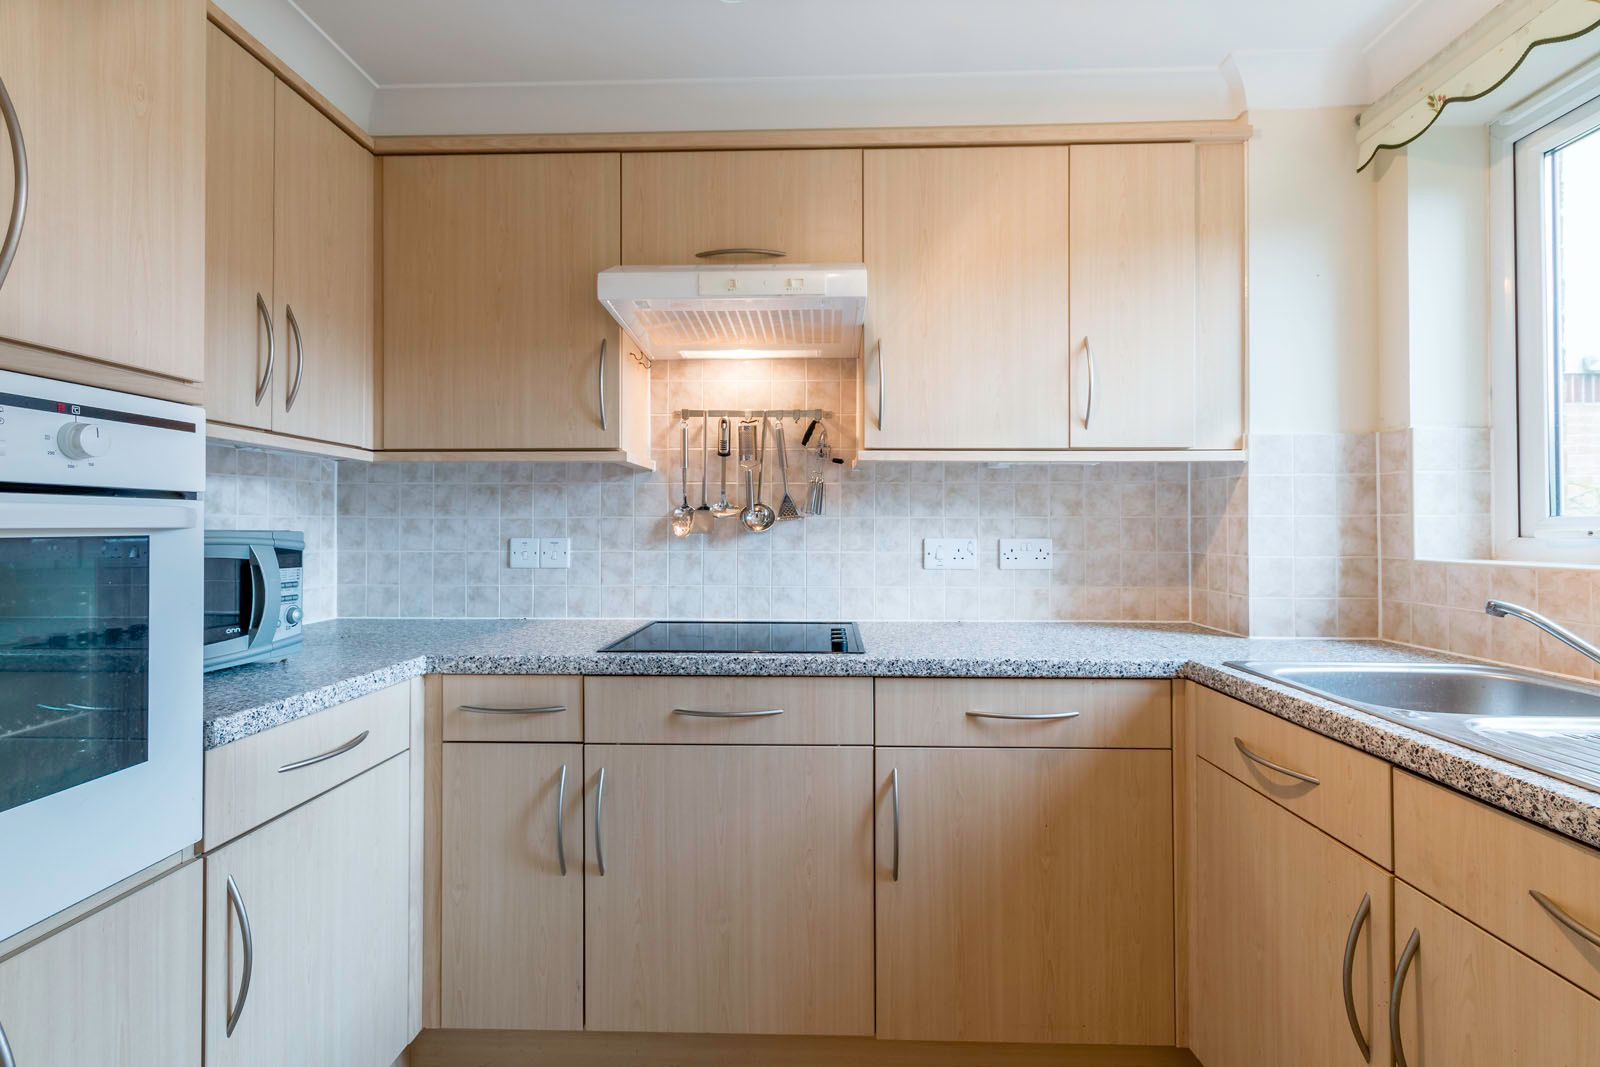 1 bed for sale in East Preston - Photo 5 (Property Image 3)